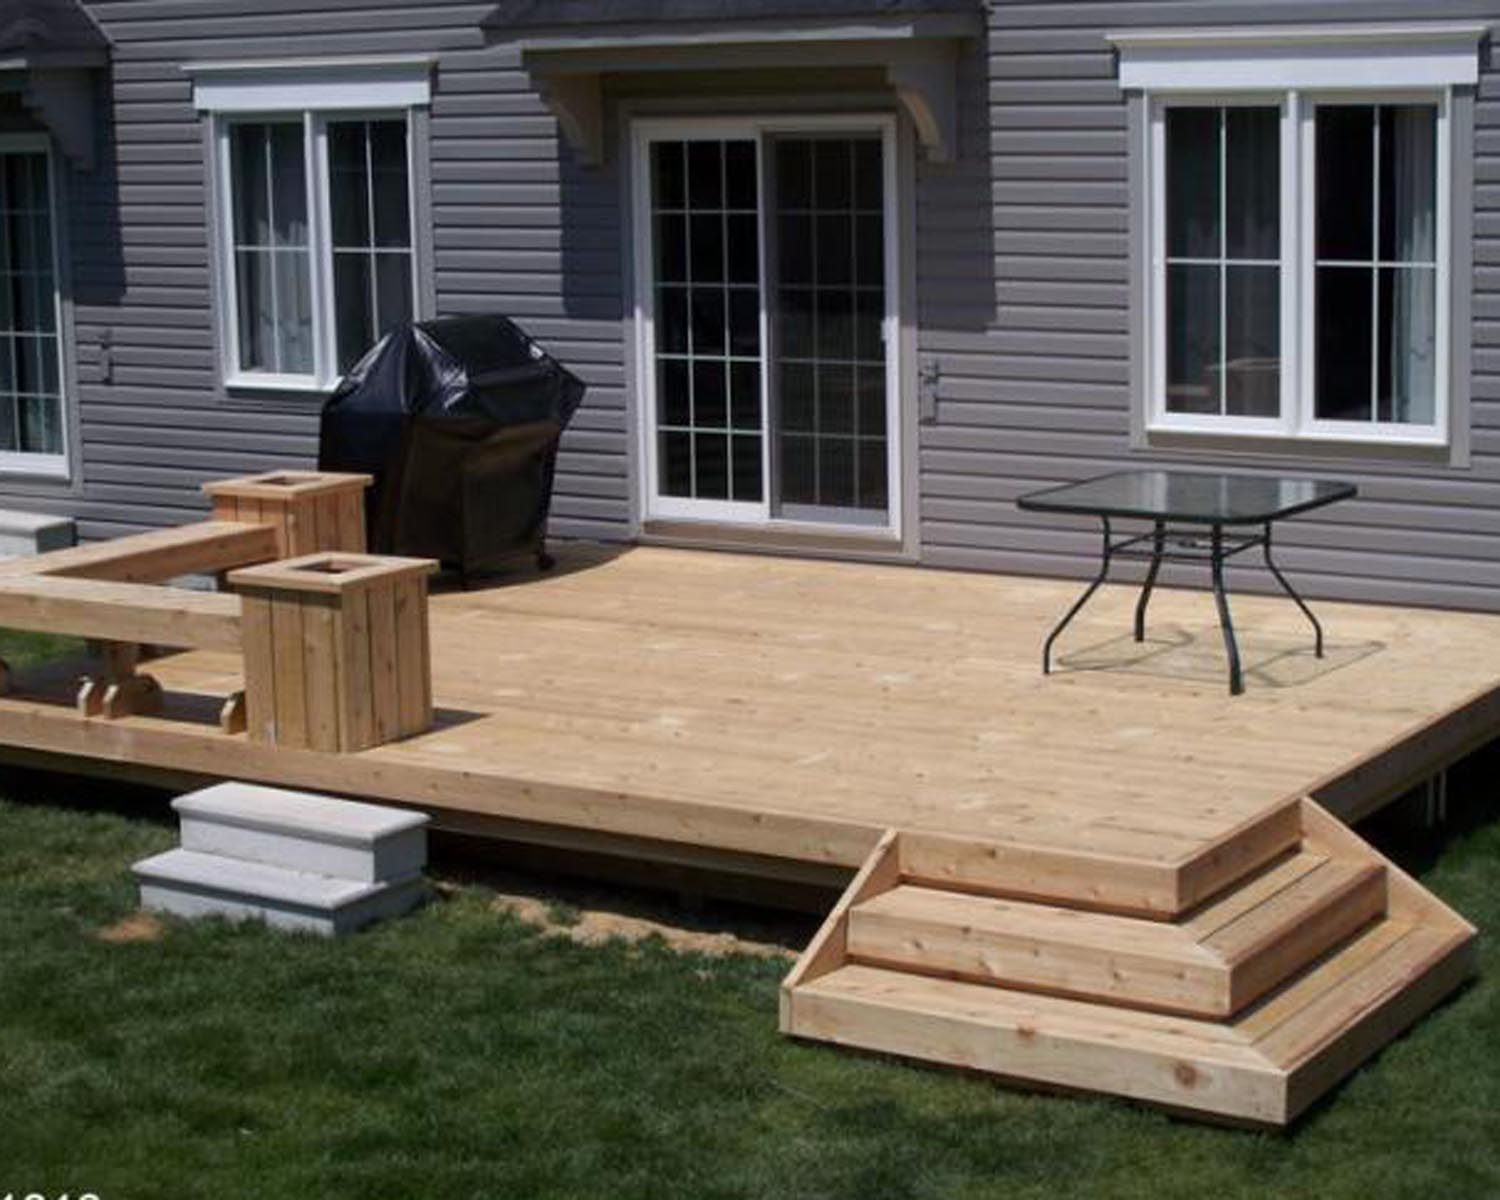 deck ideas be more when deck building simple but functional designs can - Decks Design Ideas